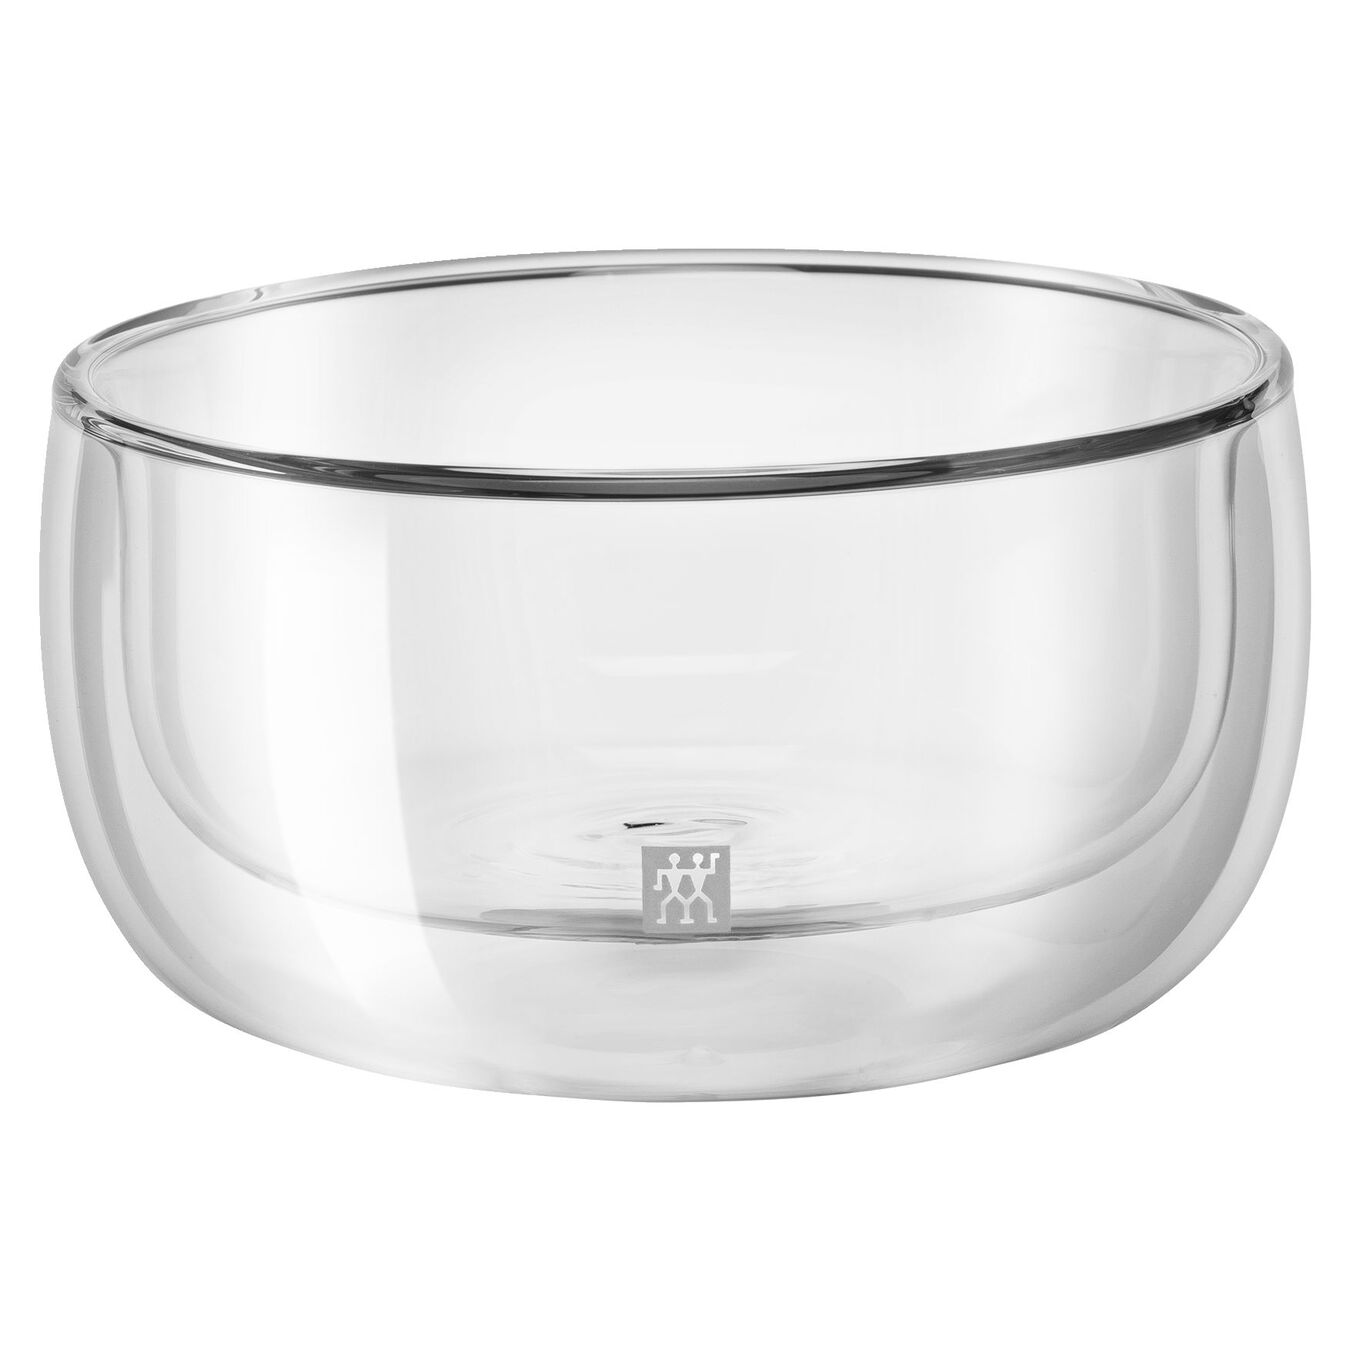 2 Piece Double-Wall Glass Bowl Set,,large 1